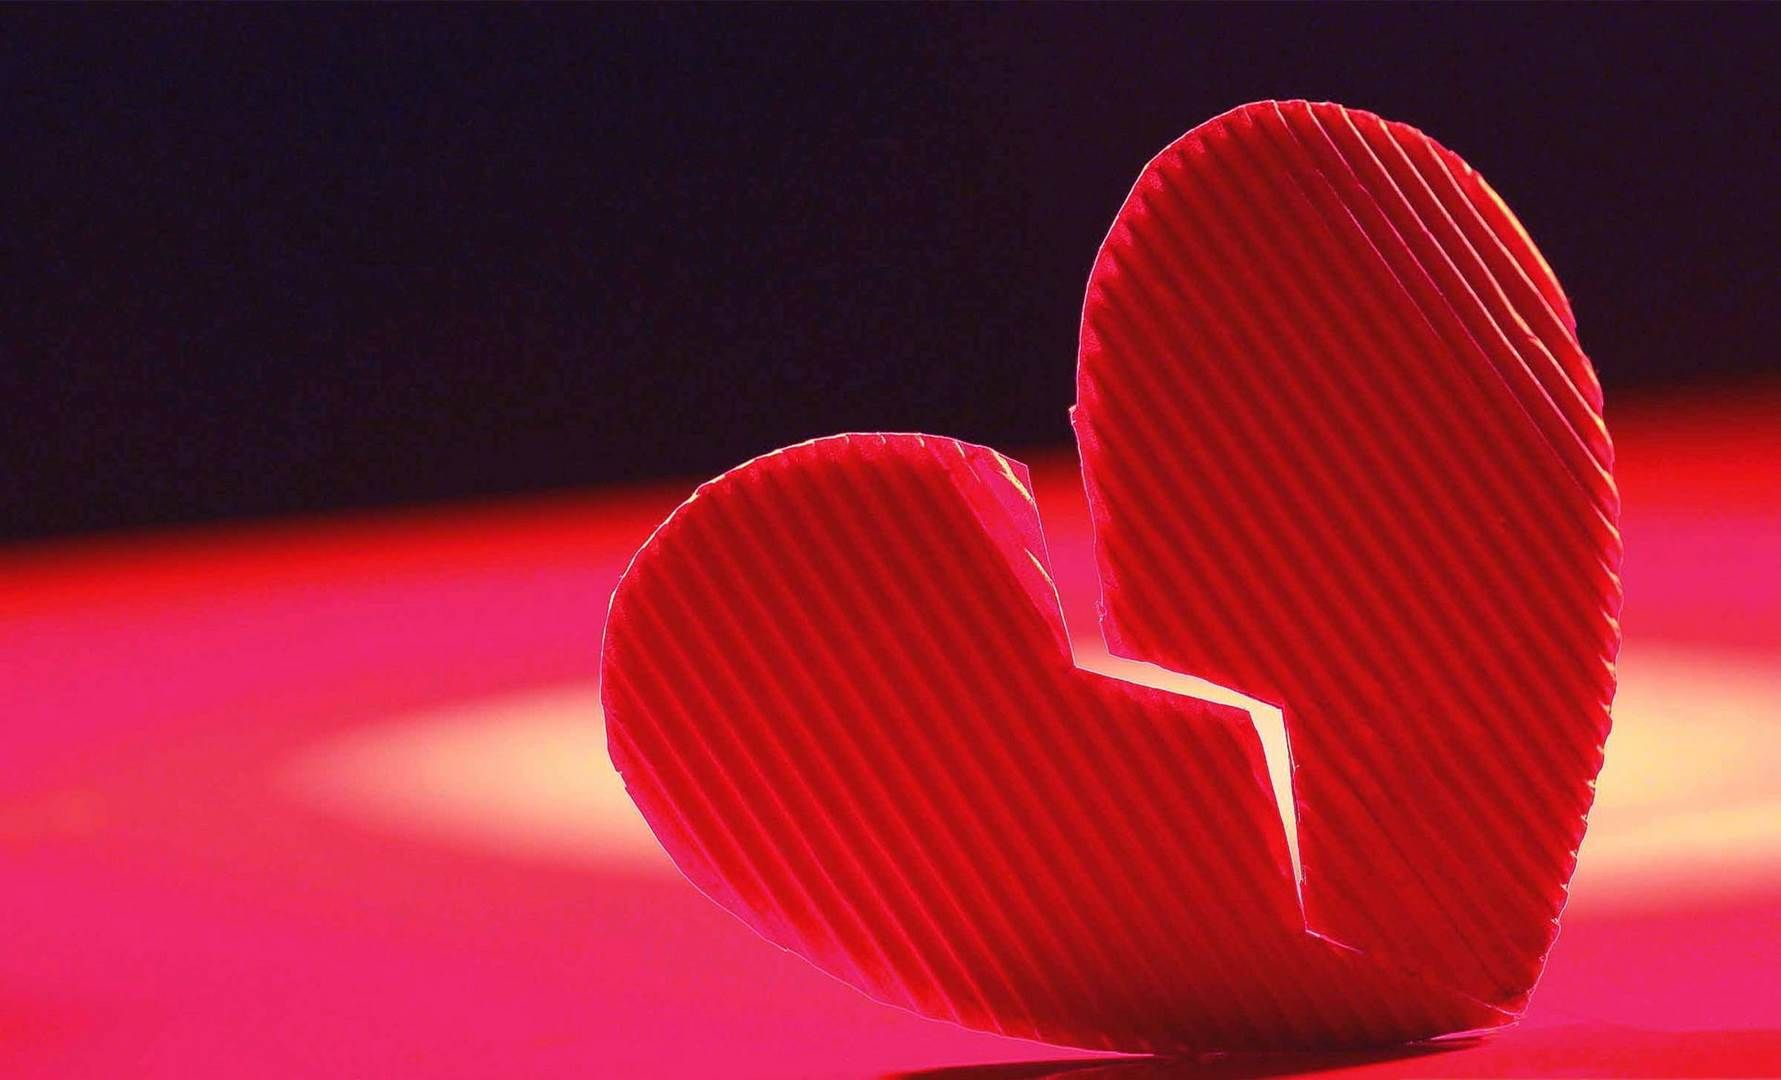 Undefined heart pics adorable wallpapers wallpapers pinterest undefined heart pics adorable wallpapers voltagebd Choice Image